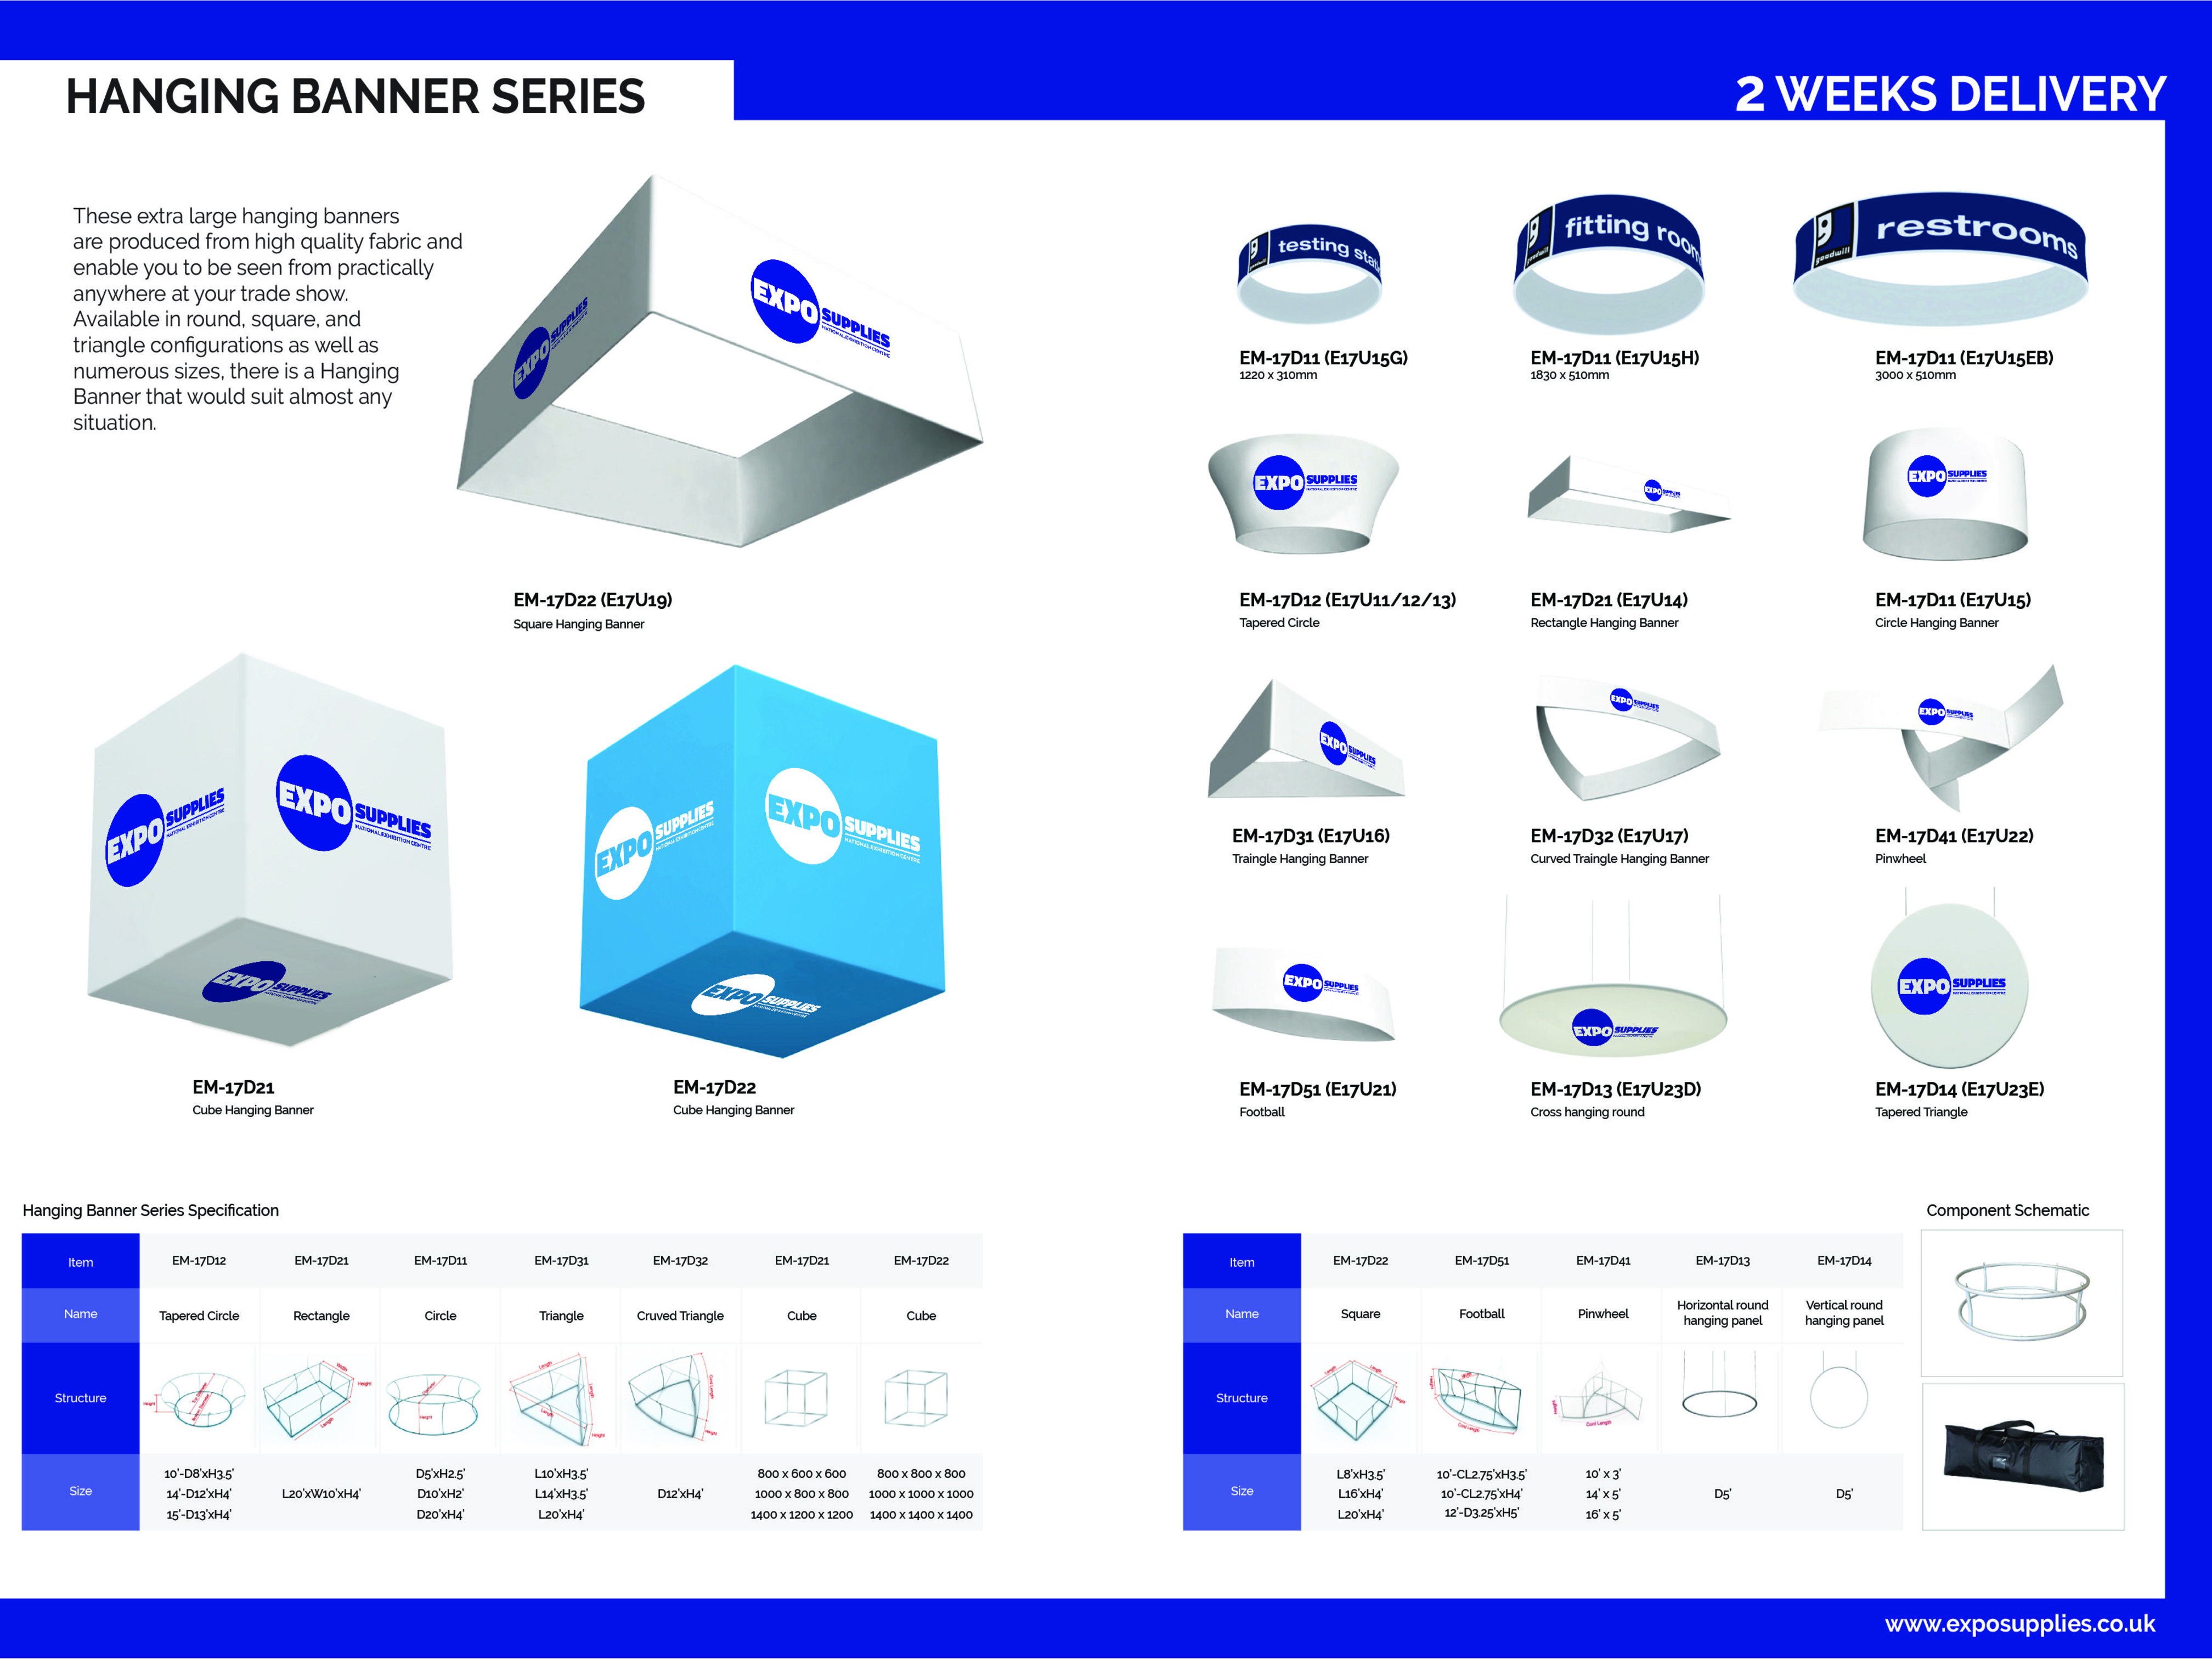 EXPO_HANING_BANNERS_WEBSITE-01_4032x3024